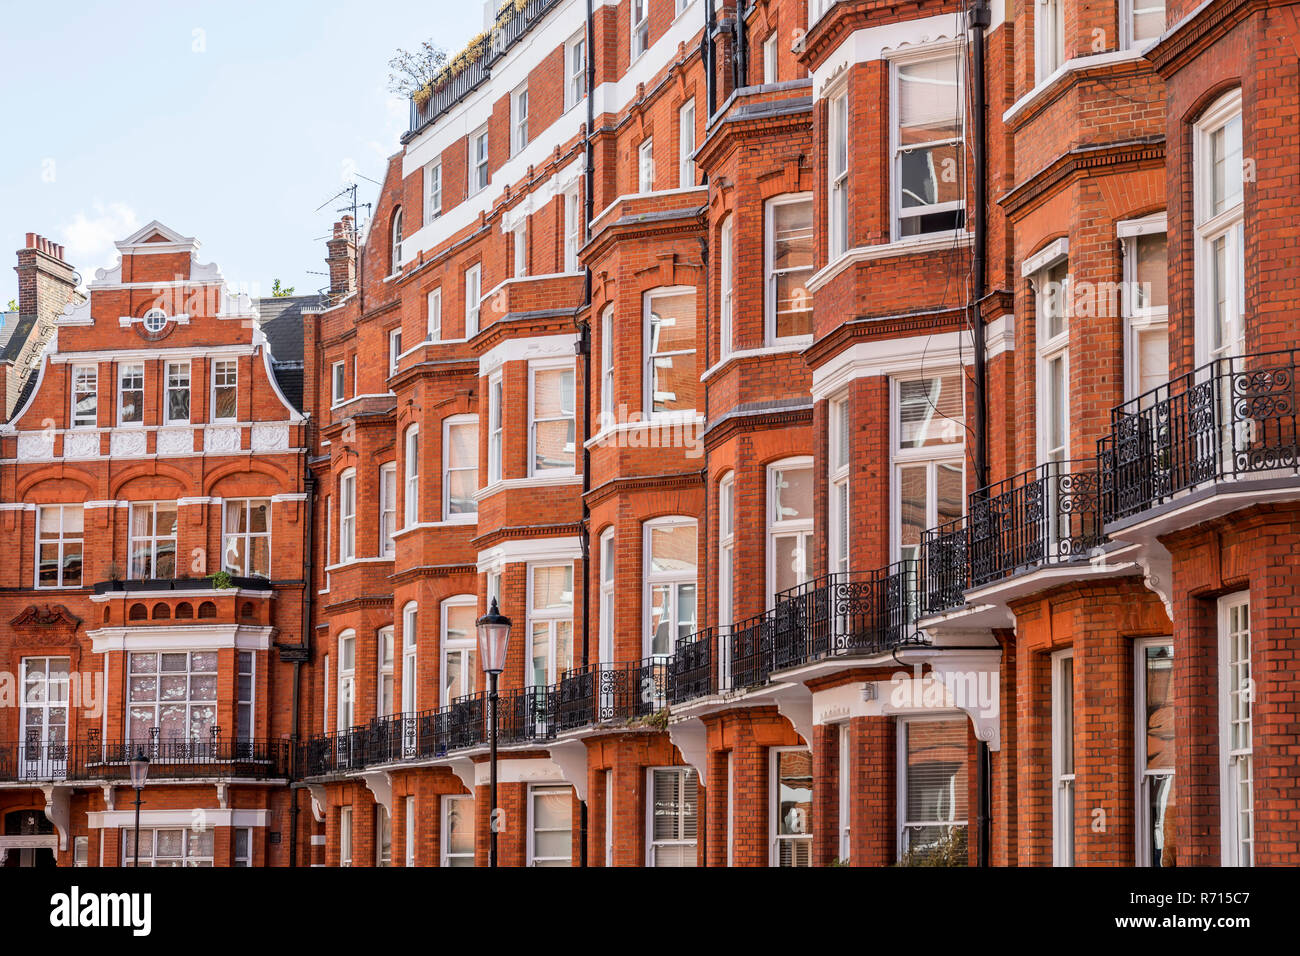 Row of houses with red brick building in Victorian style, district Kensington, London, United Kingdom - Stock Image